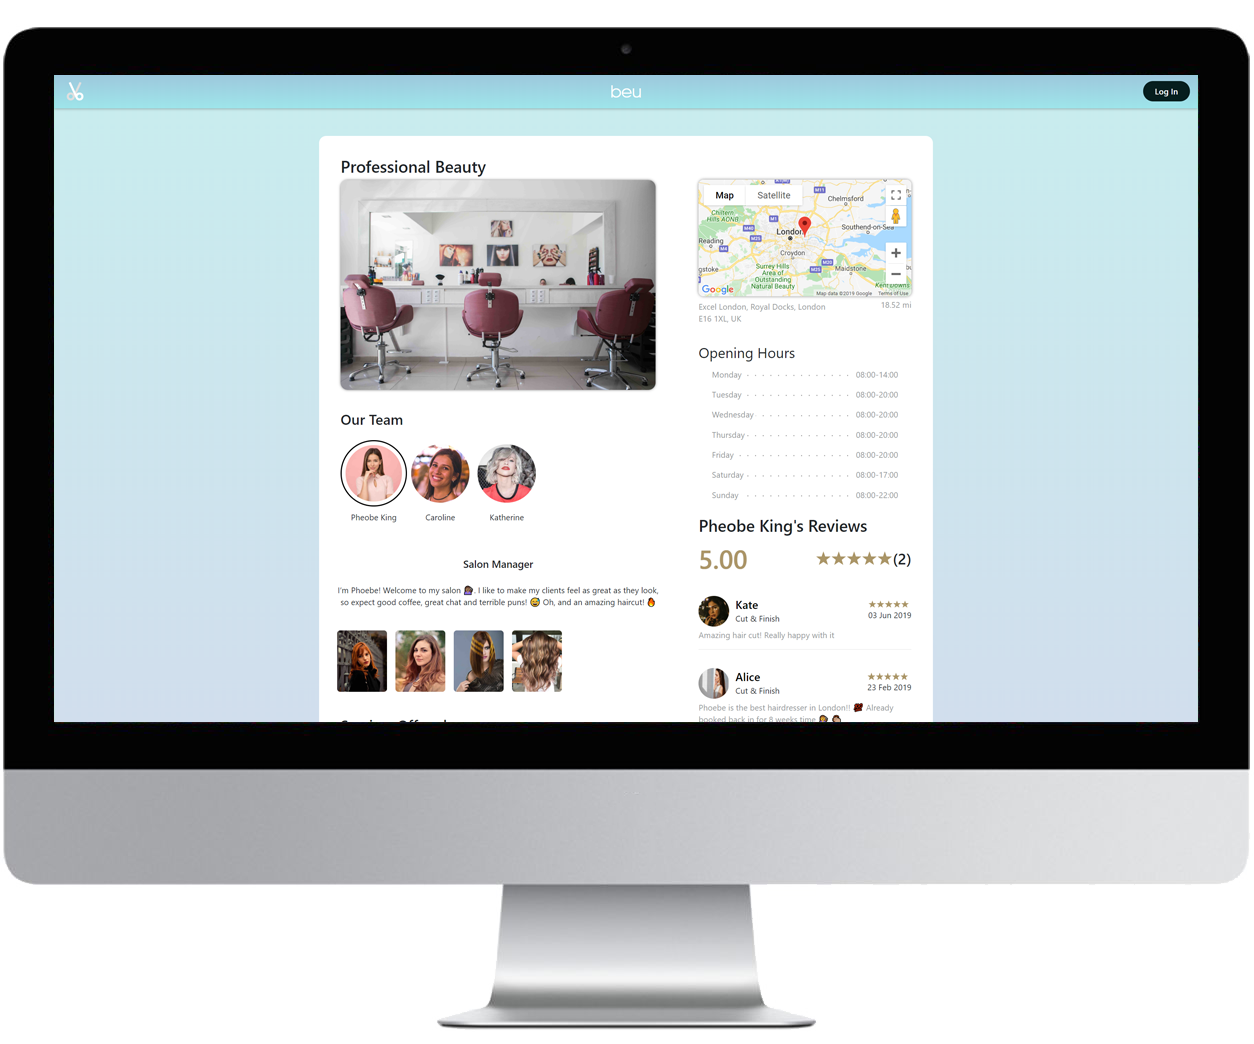 Hairdressers Journal - Increase your social media bookings in 5 minutes